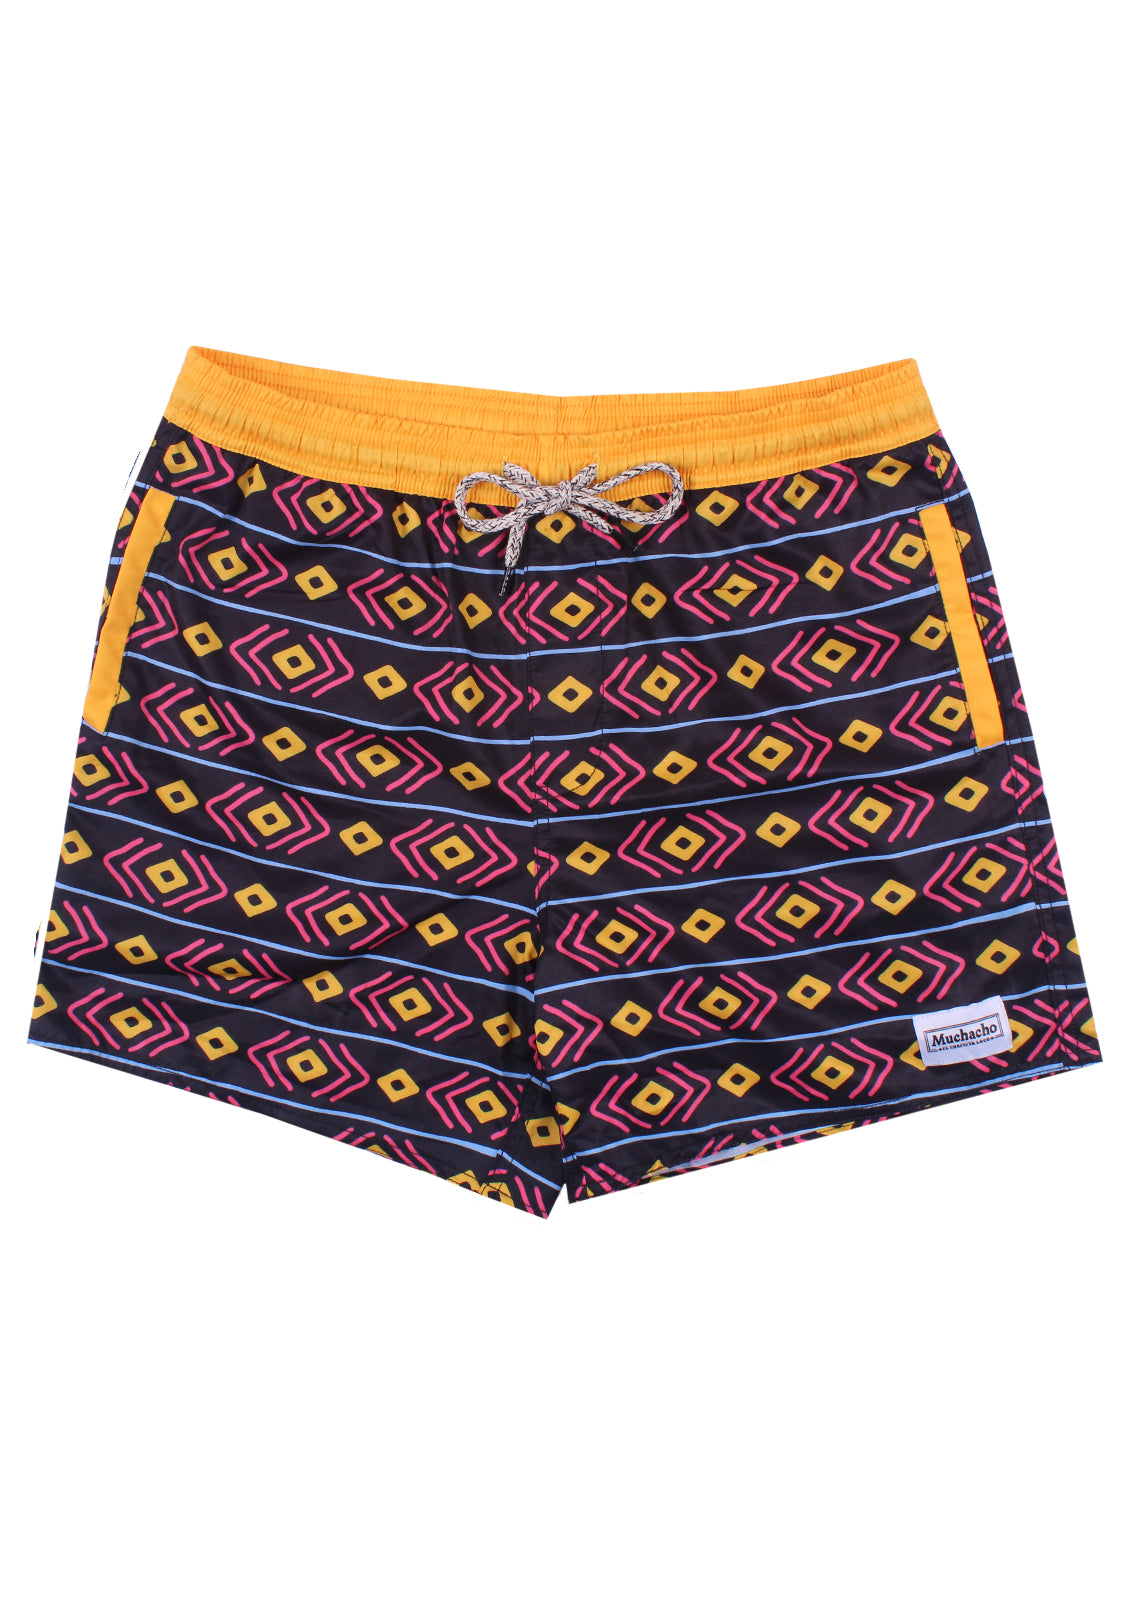 Muchacho Collection Boardshorts